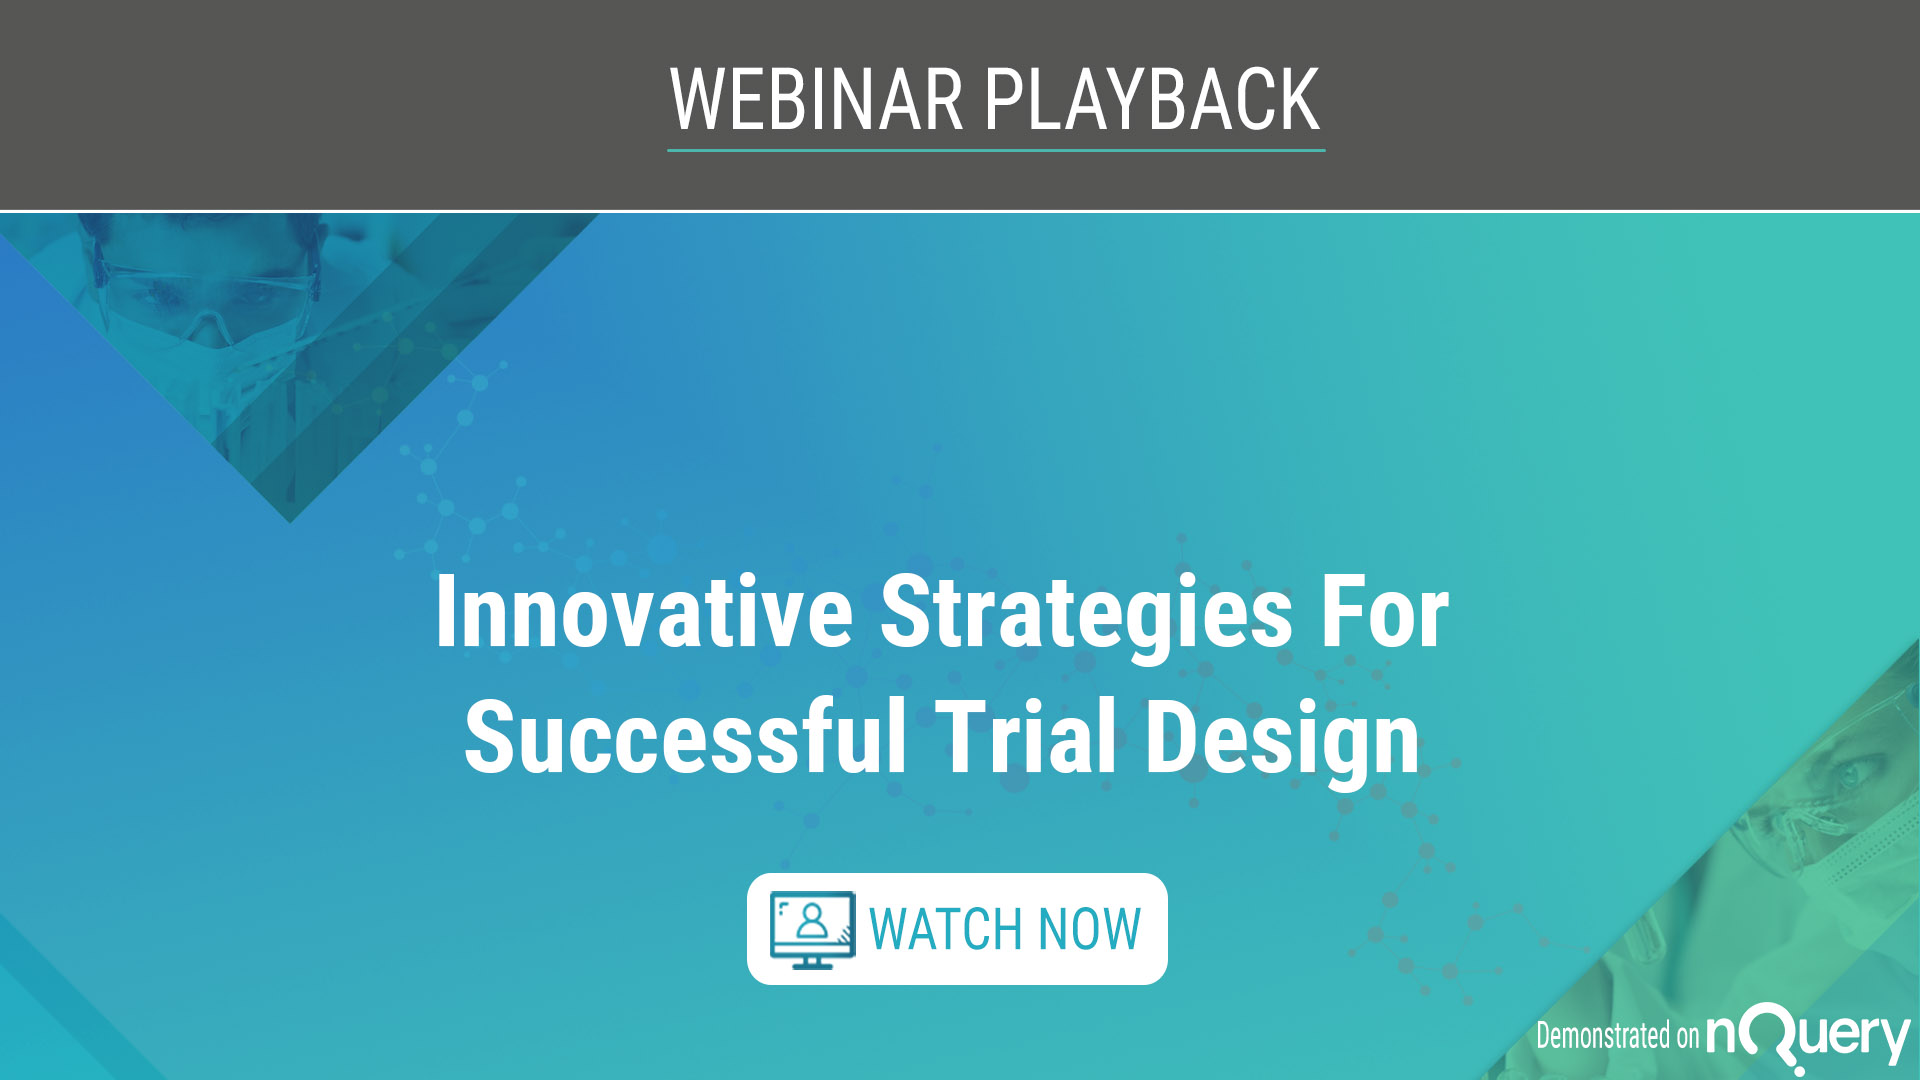 Innovative-strategies-for-successful-trial-design-demand-1920-1080